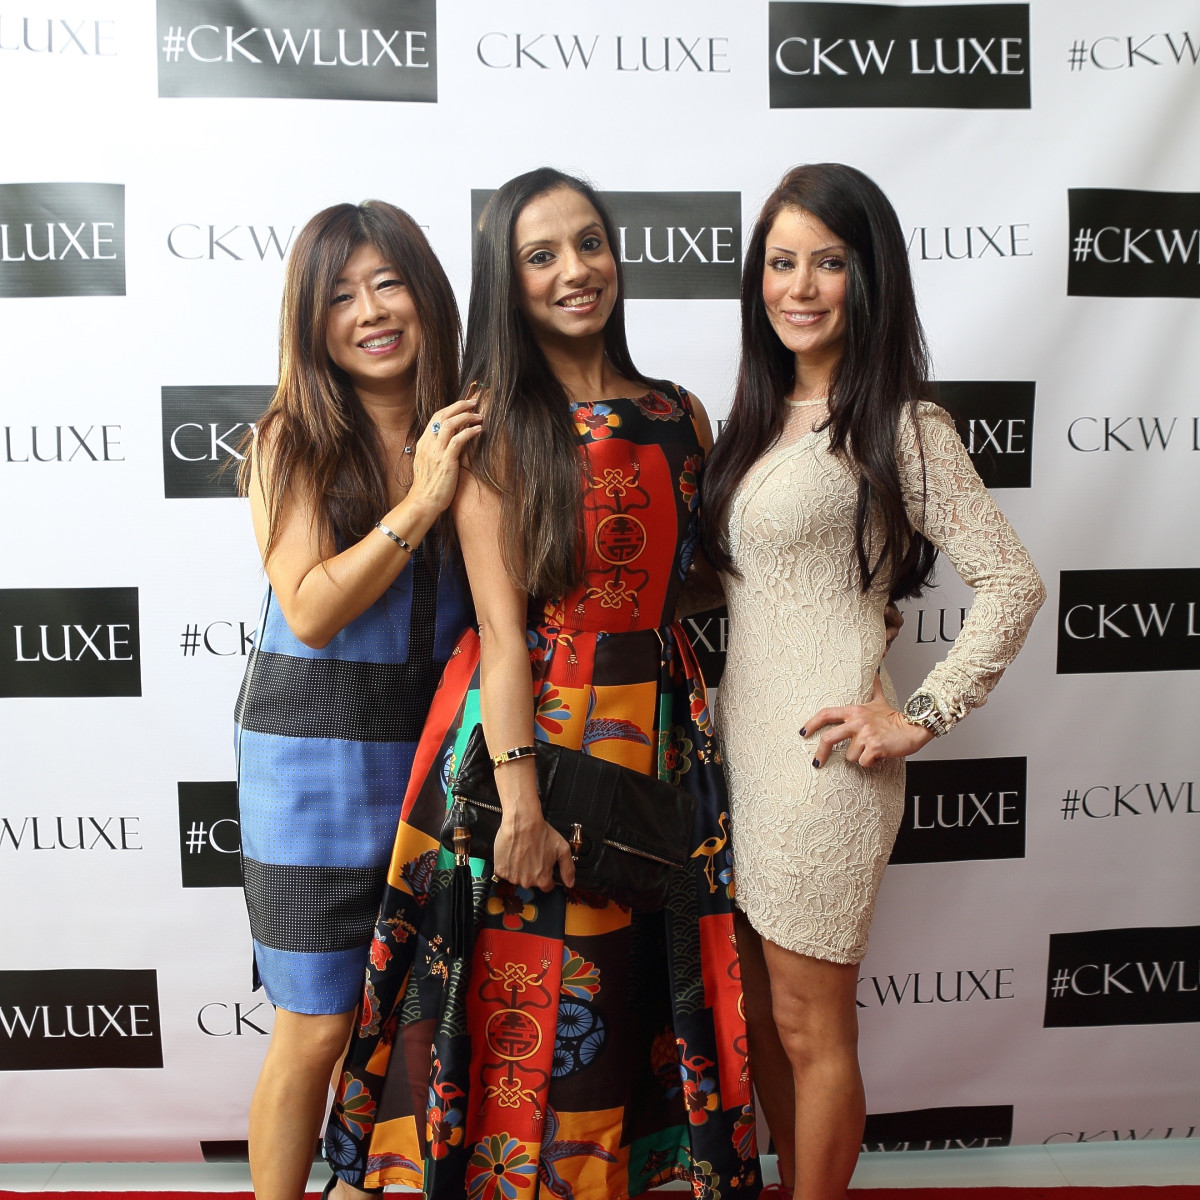 CKW Luxe Star Awards 6/16  Rose Chen, Nevin Noorani, Diane Angel